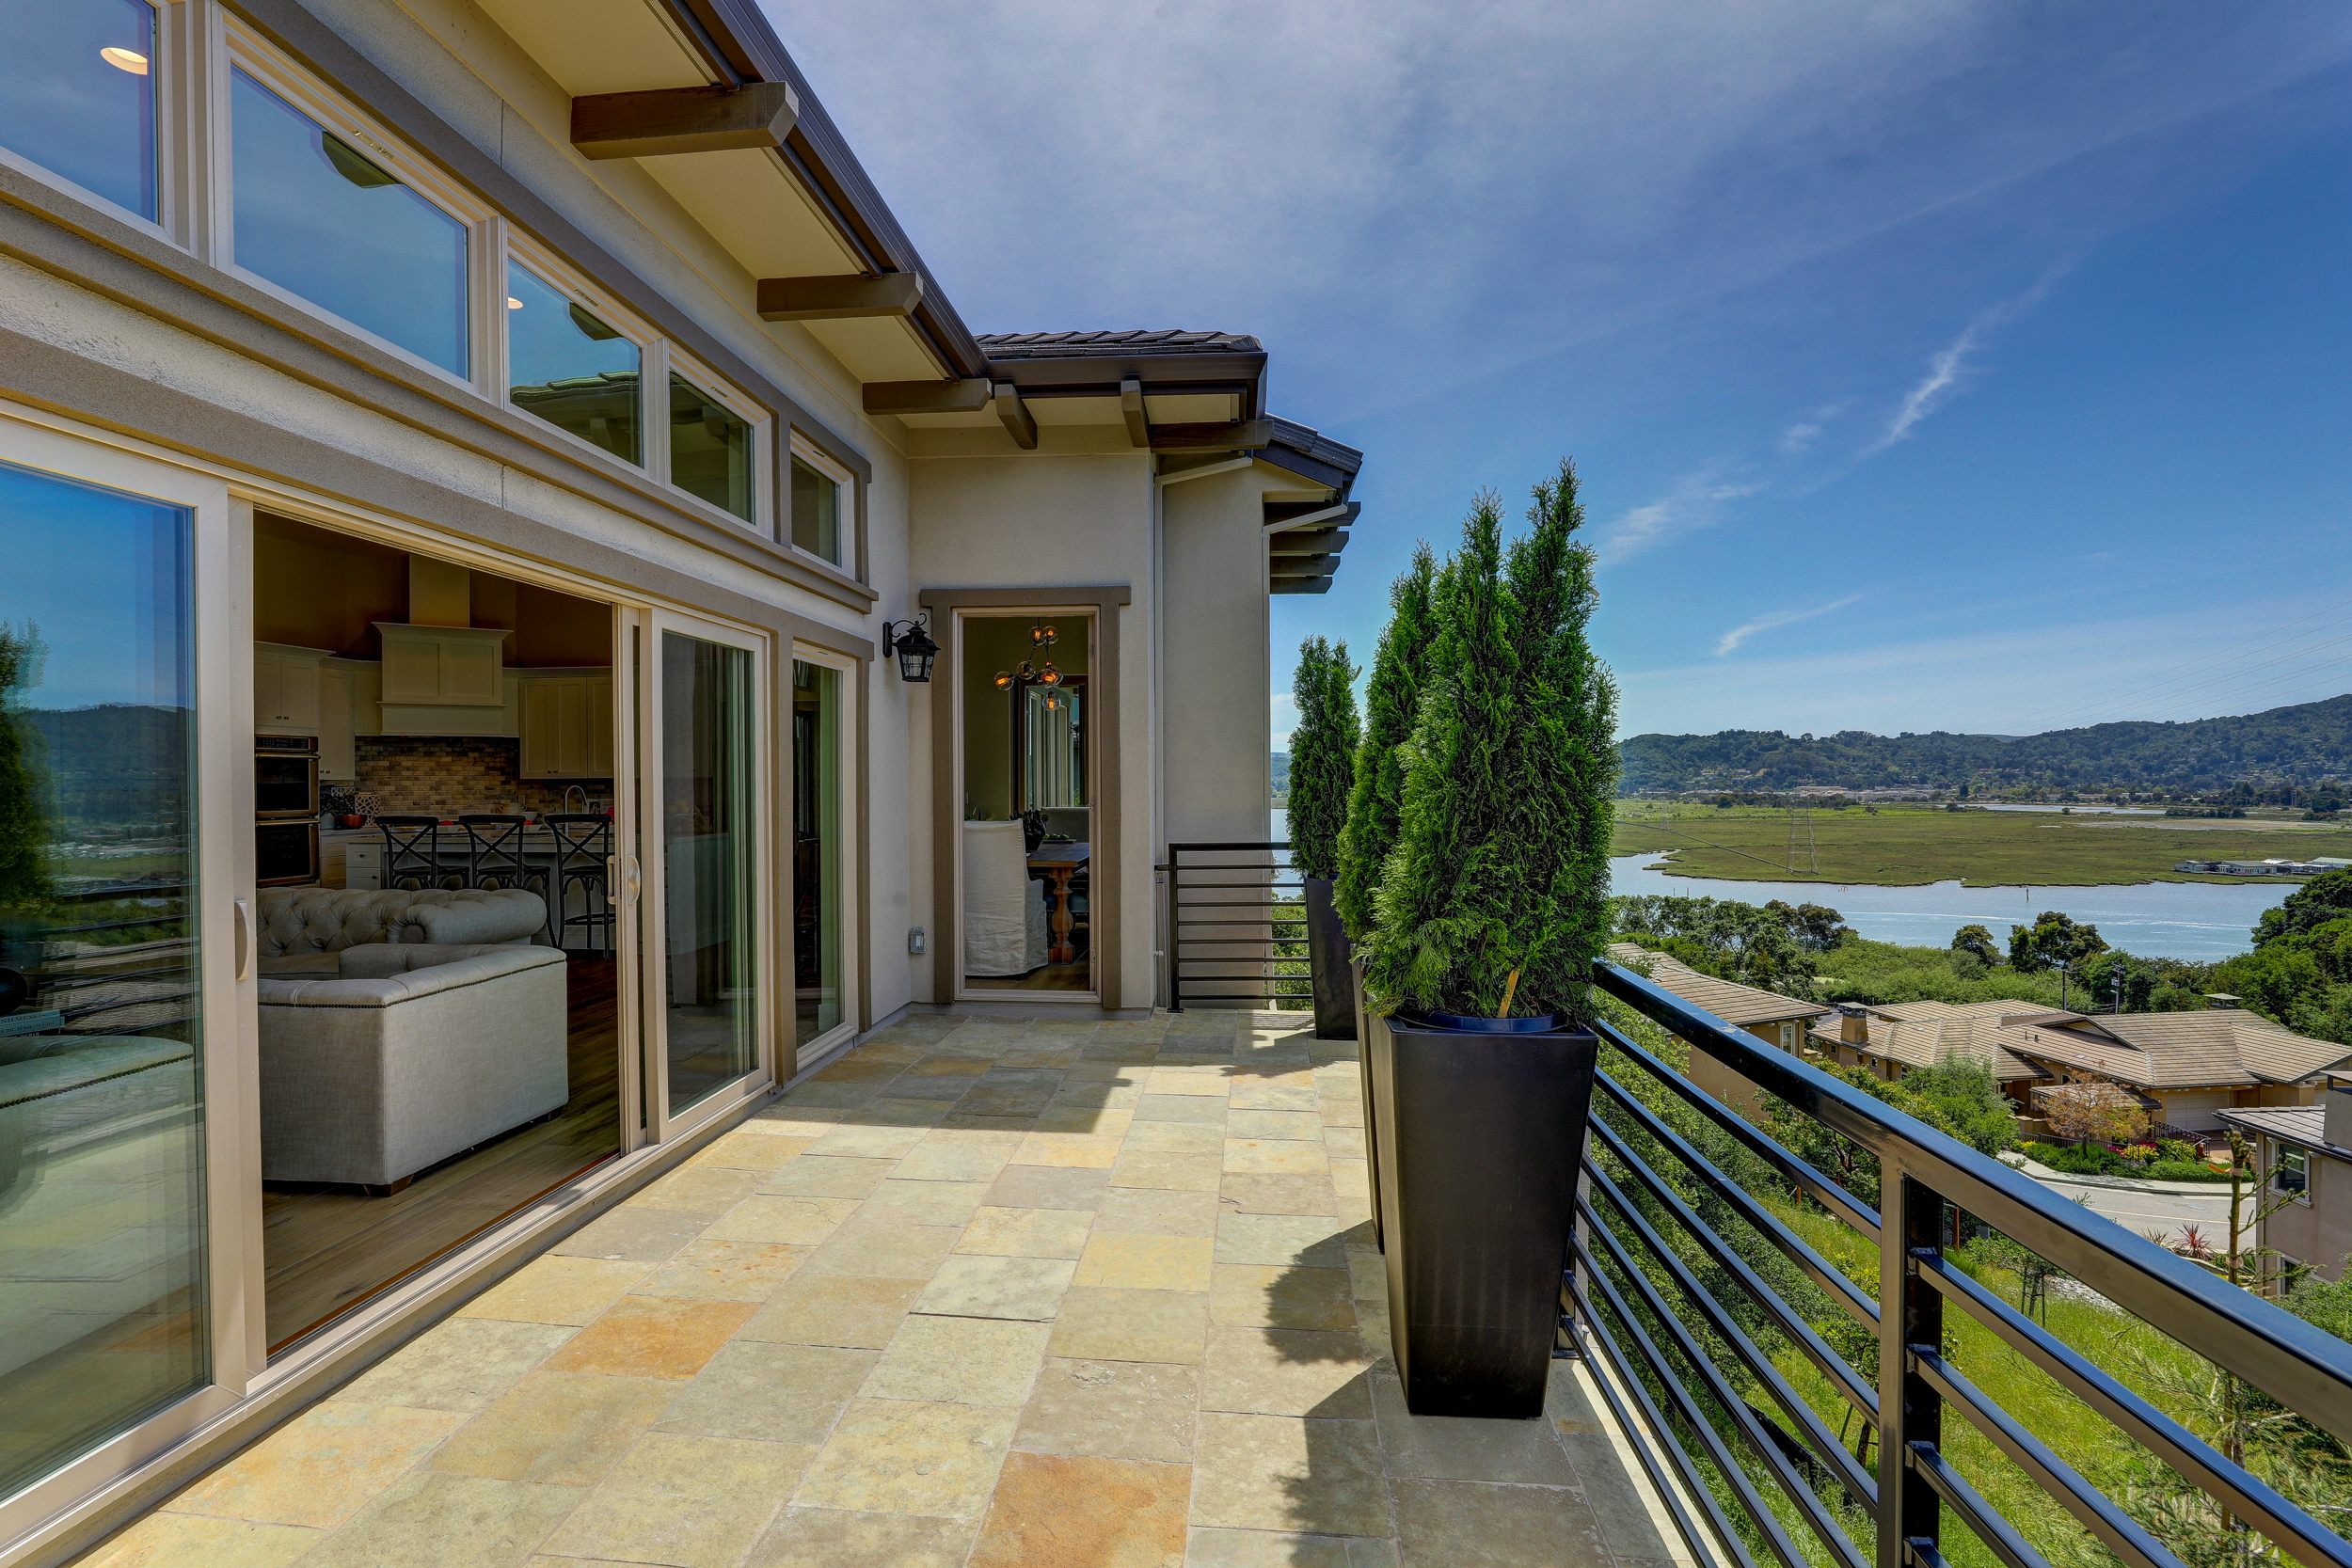 29 Drakes Cove Larkspur's Best Realtor 42 - Own Marin Pacific Union - Marin County's Top Realtor.jpg